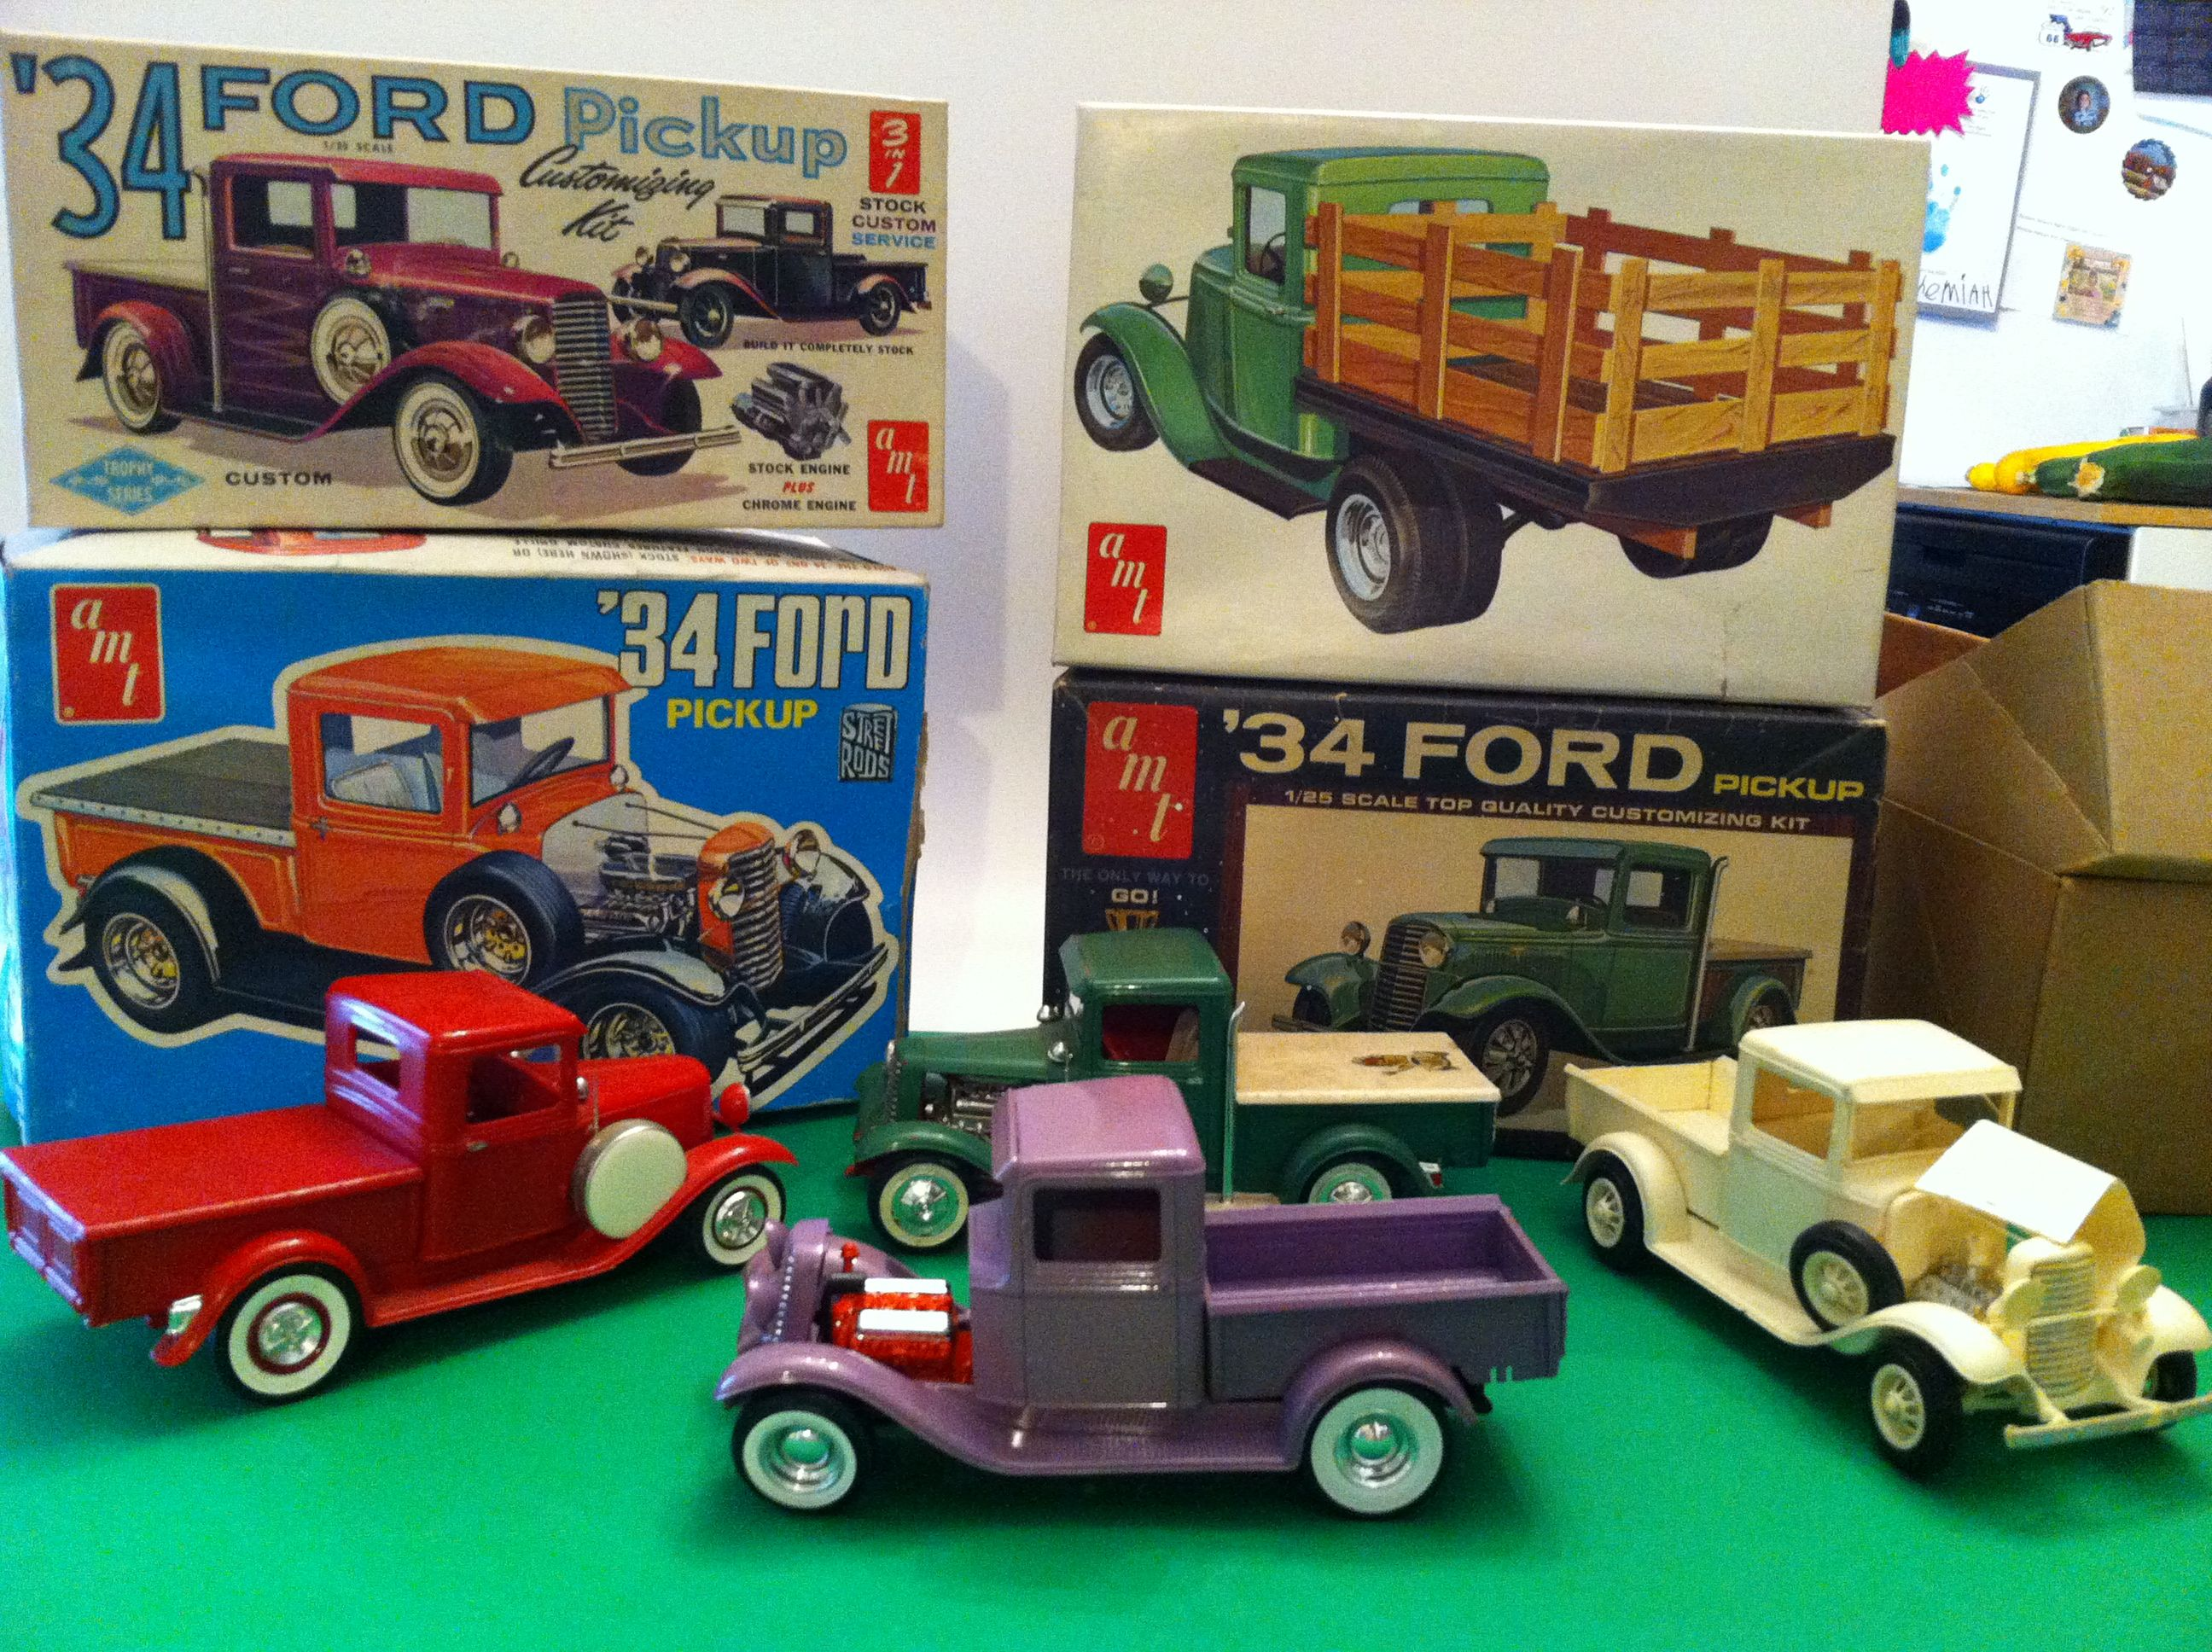 221 Best Model Cars Images On Pinterest Scale Models Car Kits